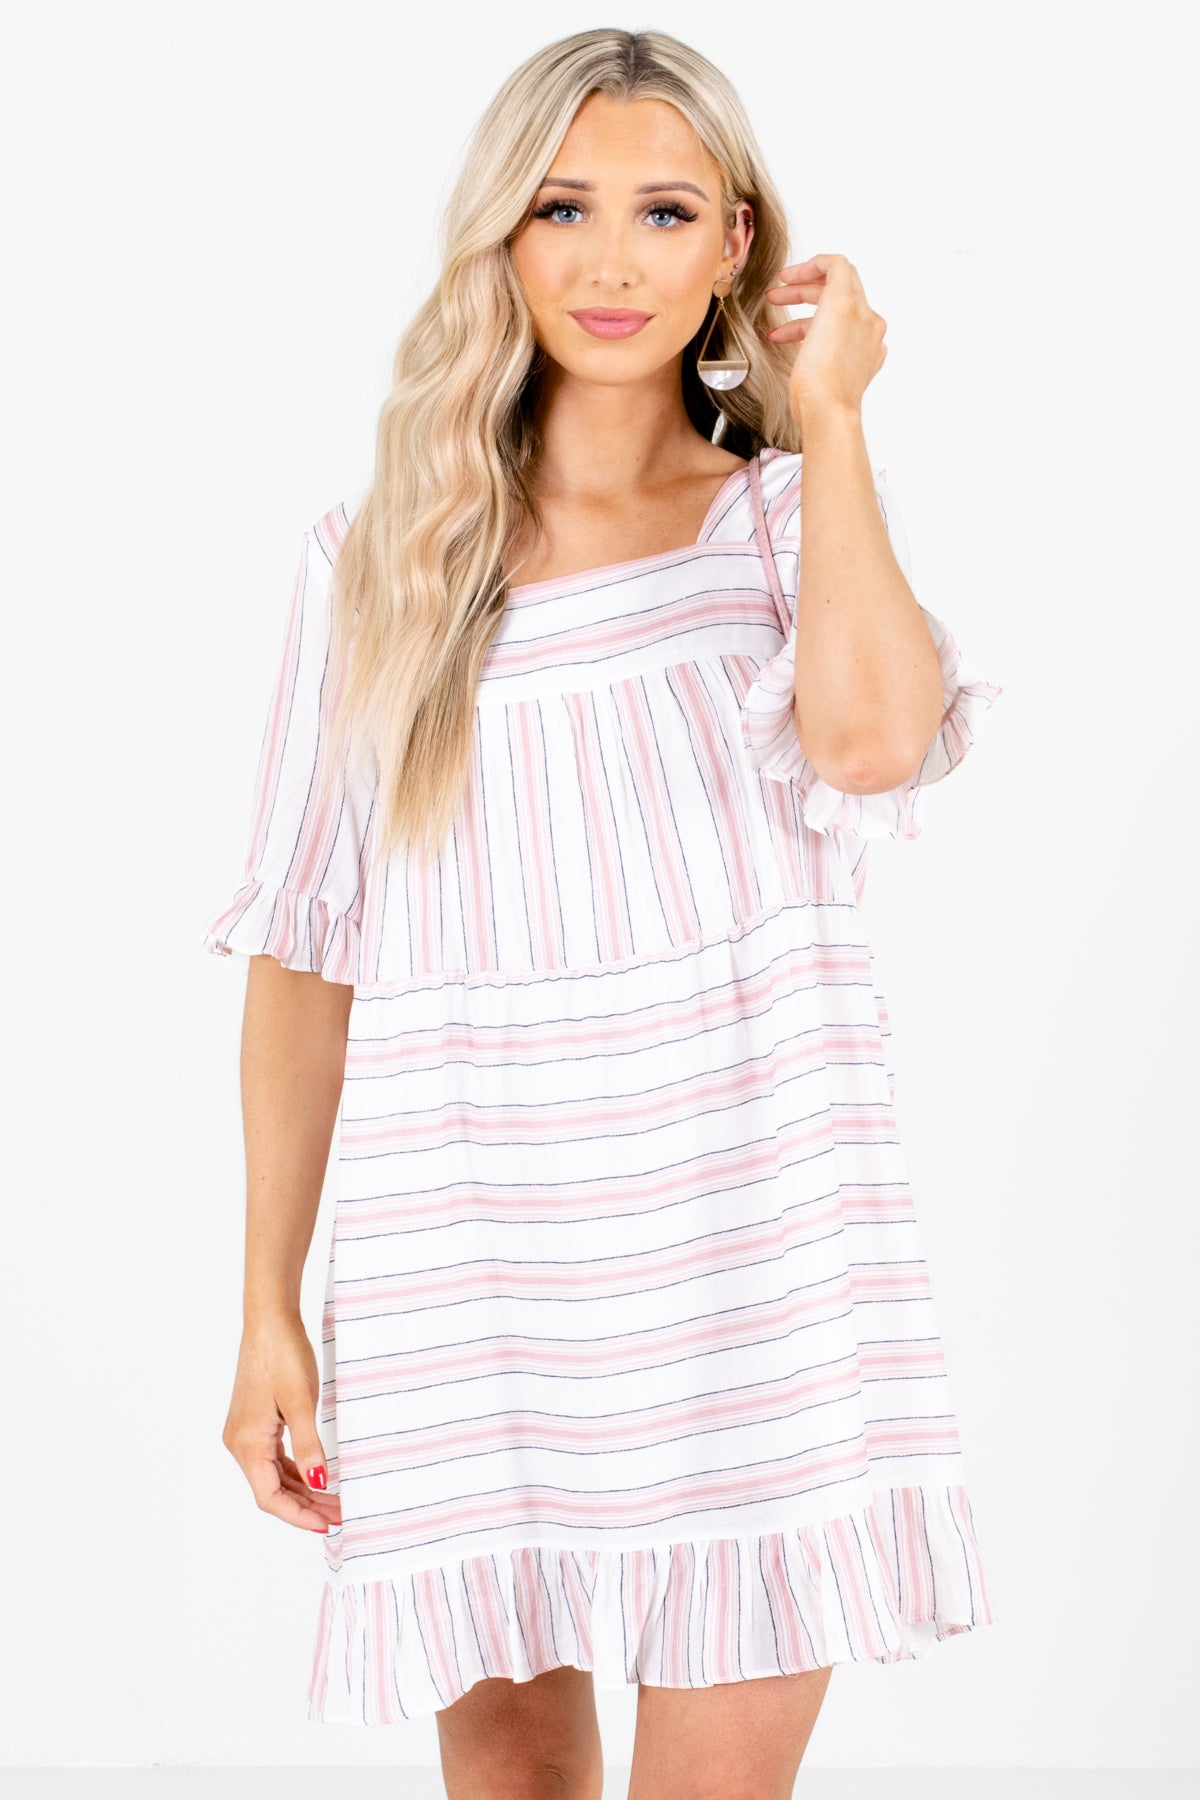 Pink Multicolored Stripe Patterned Boutique Mini Dresses for Women